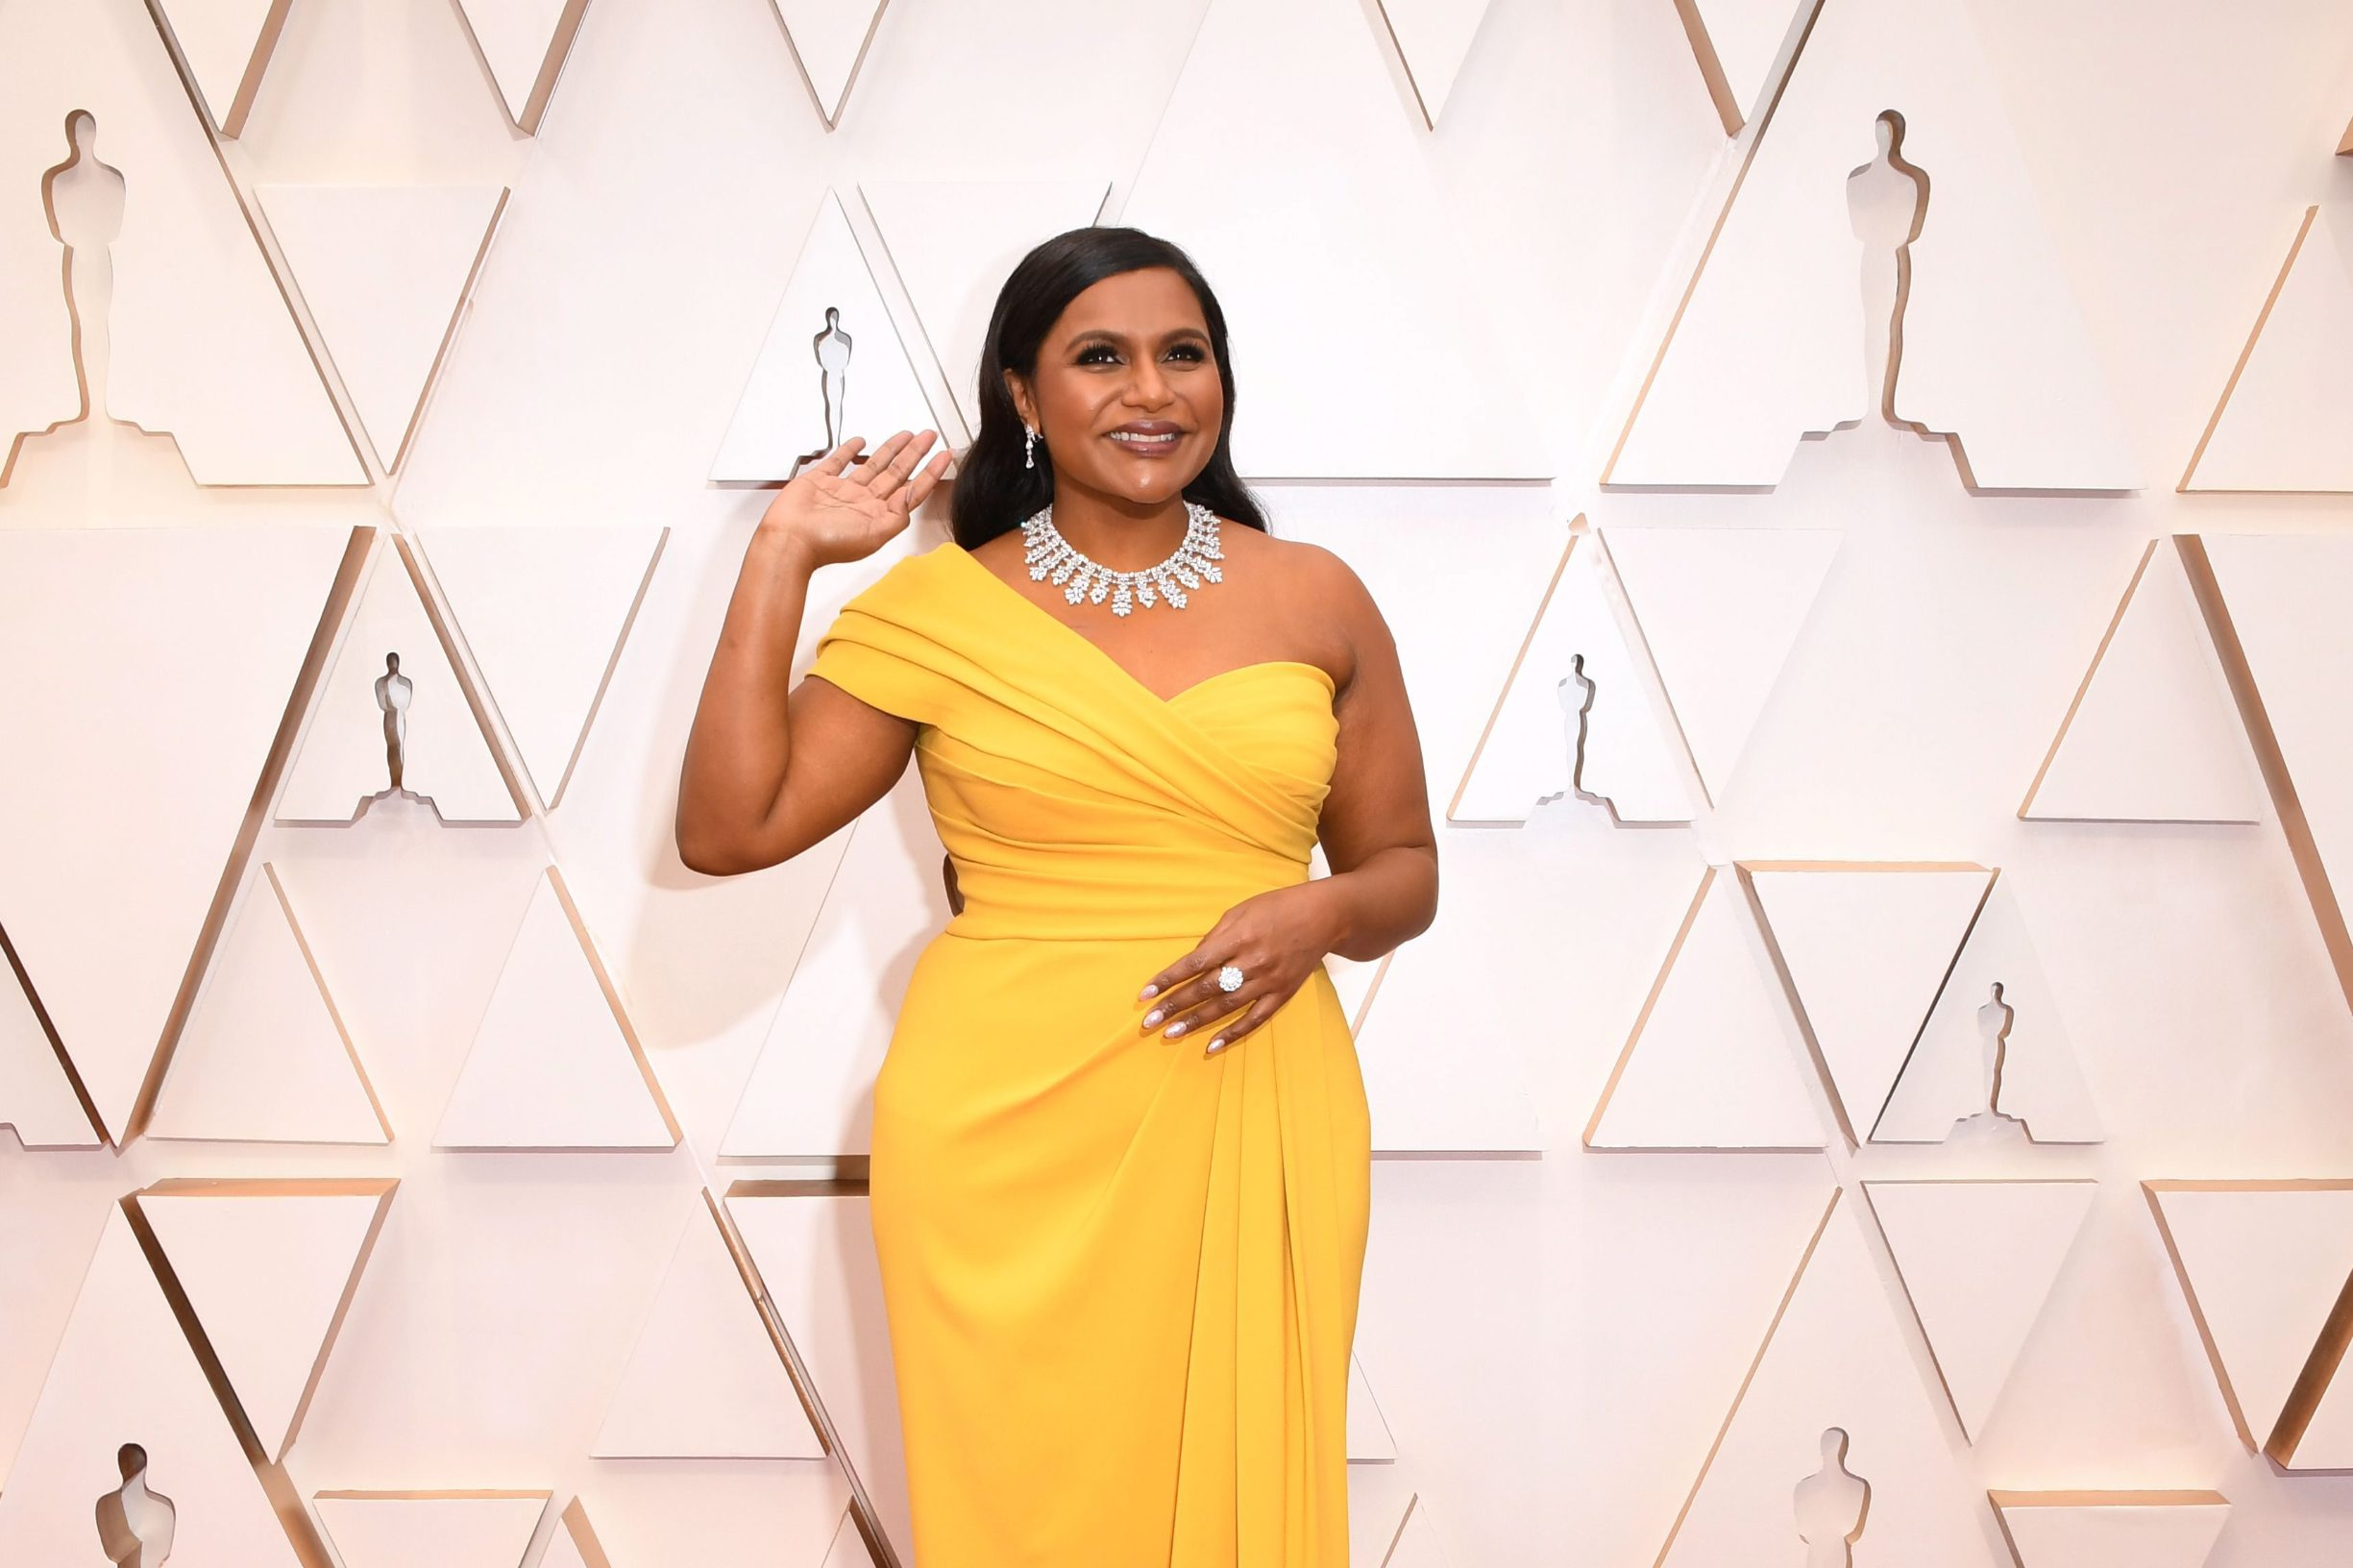 US actress Mindy Kaling arrives for the 92nd Oscars at the Dolby Theatre in Hollywood, California on February 9, 2020. (Photo by Robyn Beck / AFP)